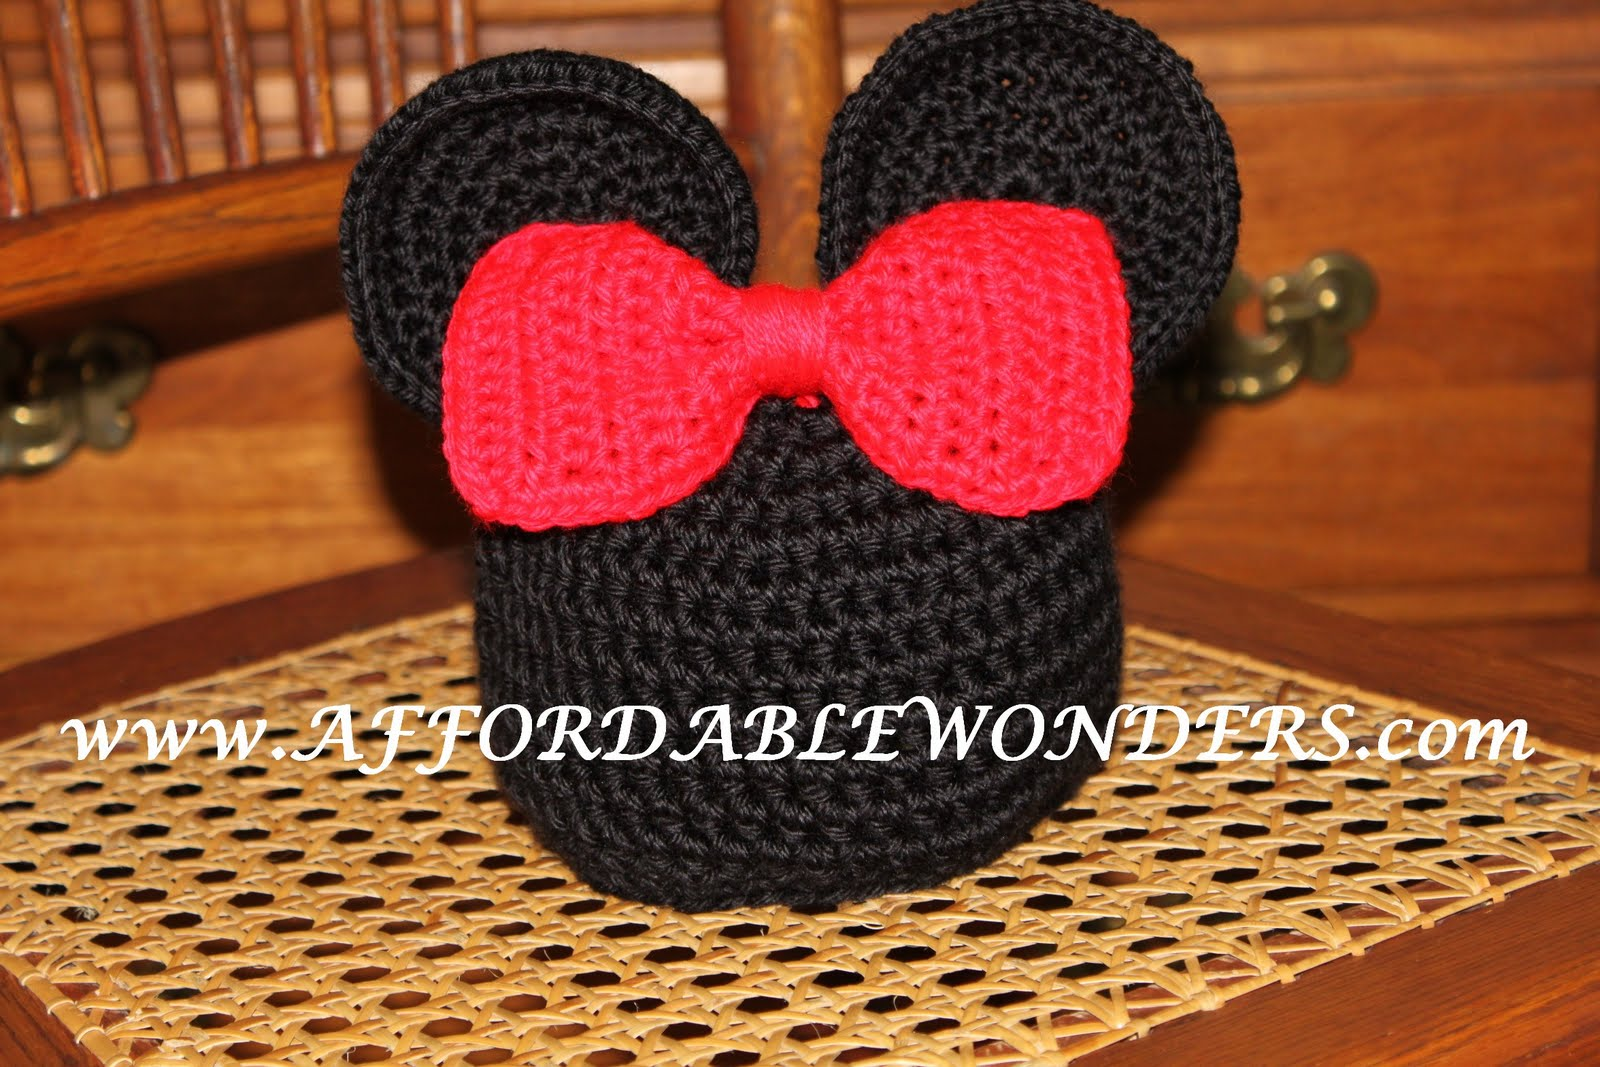 ca7aadff15a Affordable Wonders  Mickey  Minnie Mouse inspired Crocheted hat Pattern